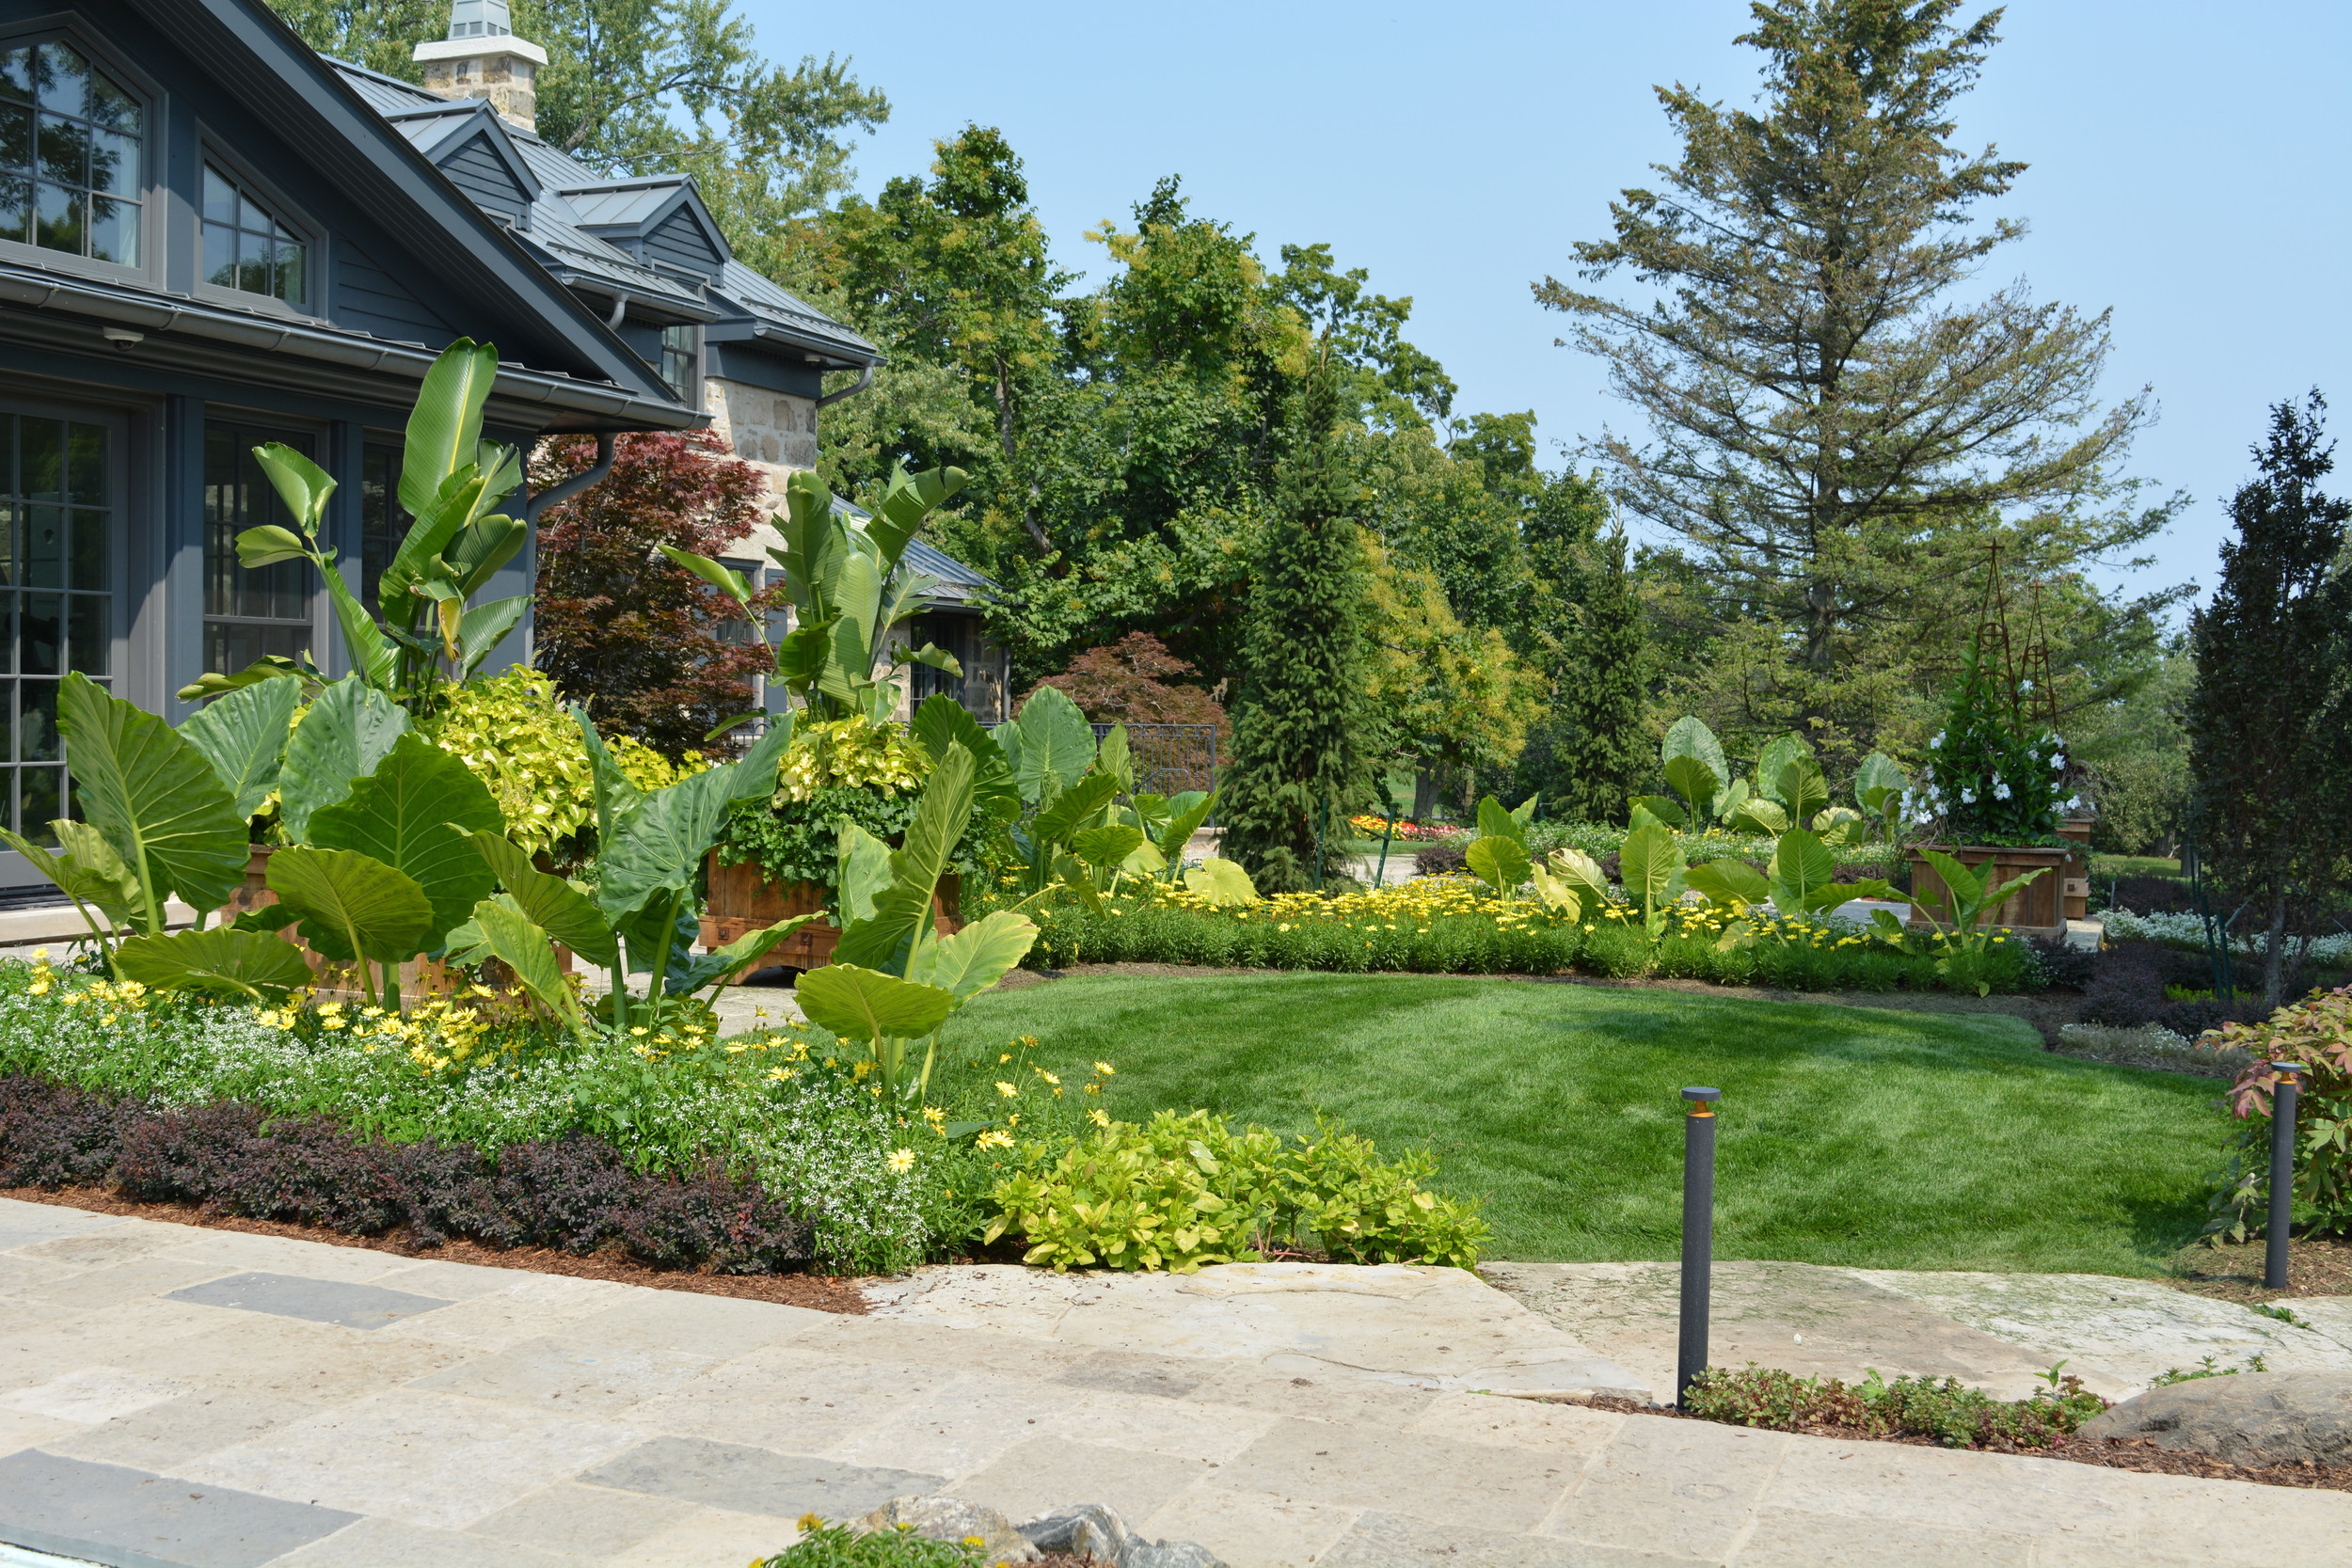 Transforming outside spaces   The expertise and passion to help you find your Outside Element   About